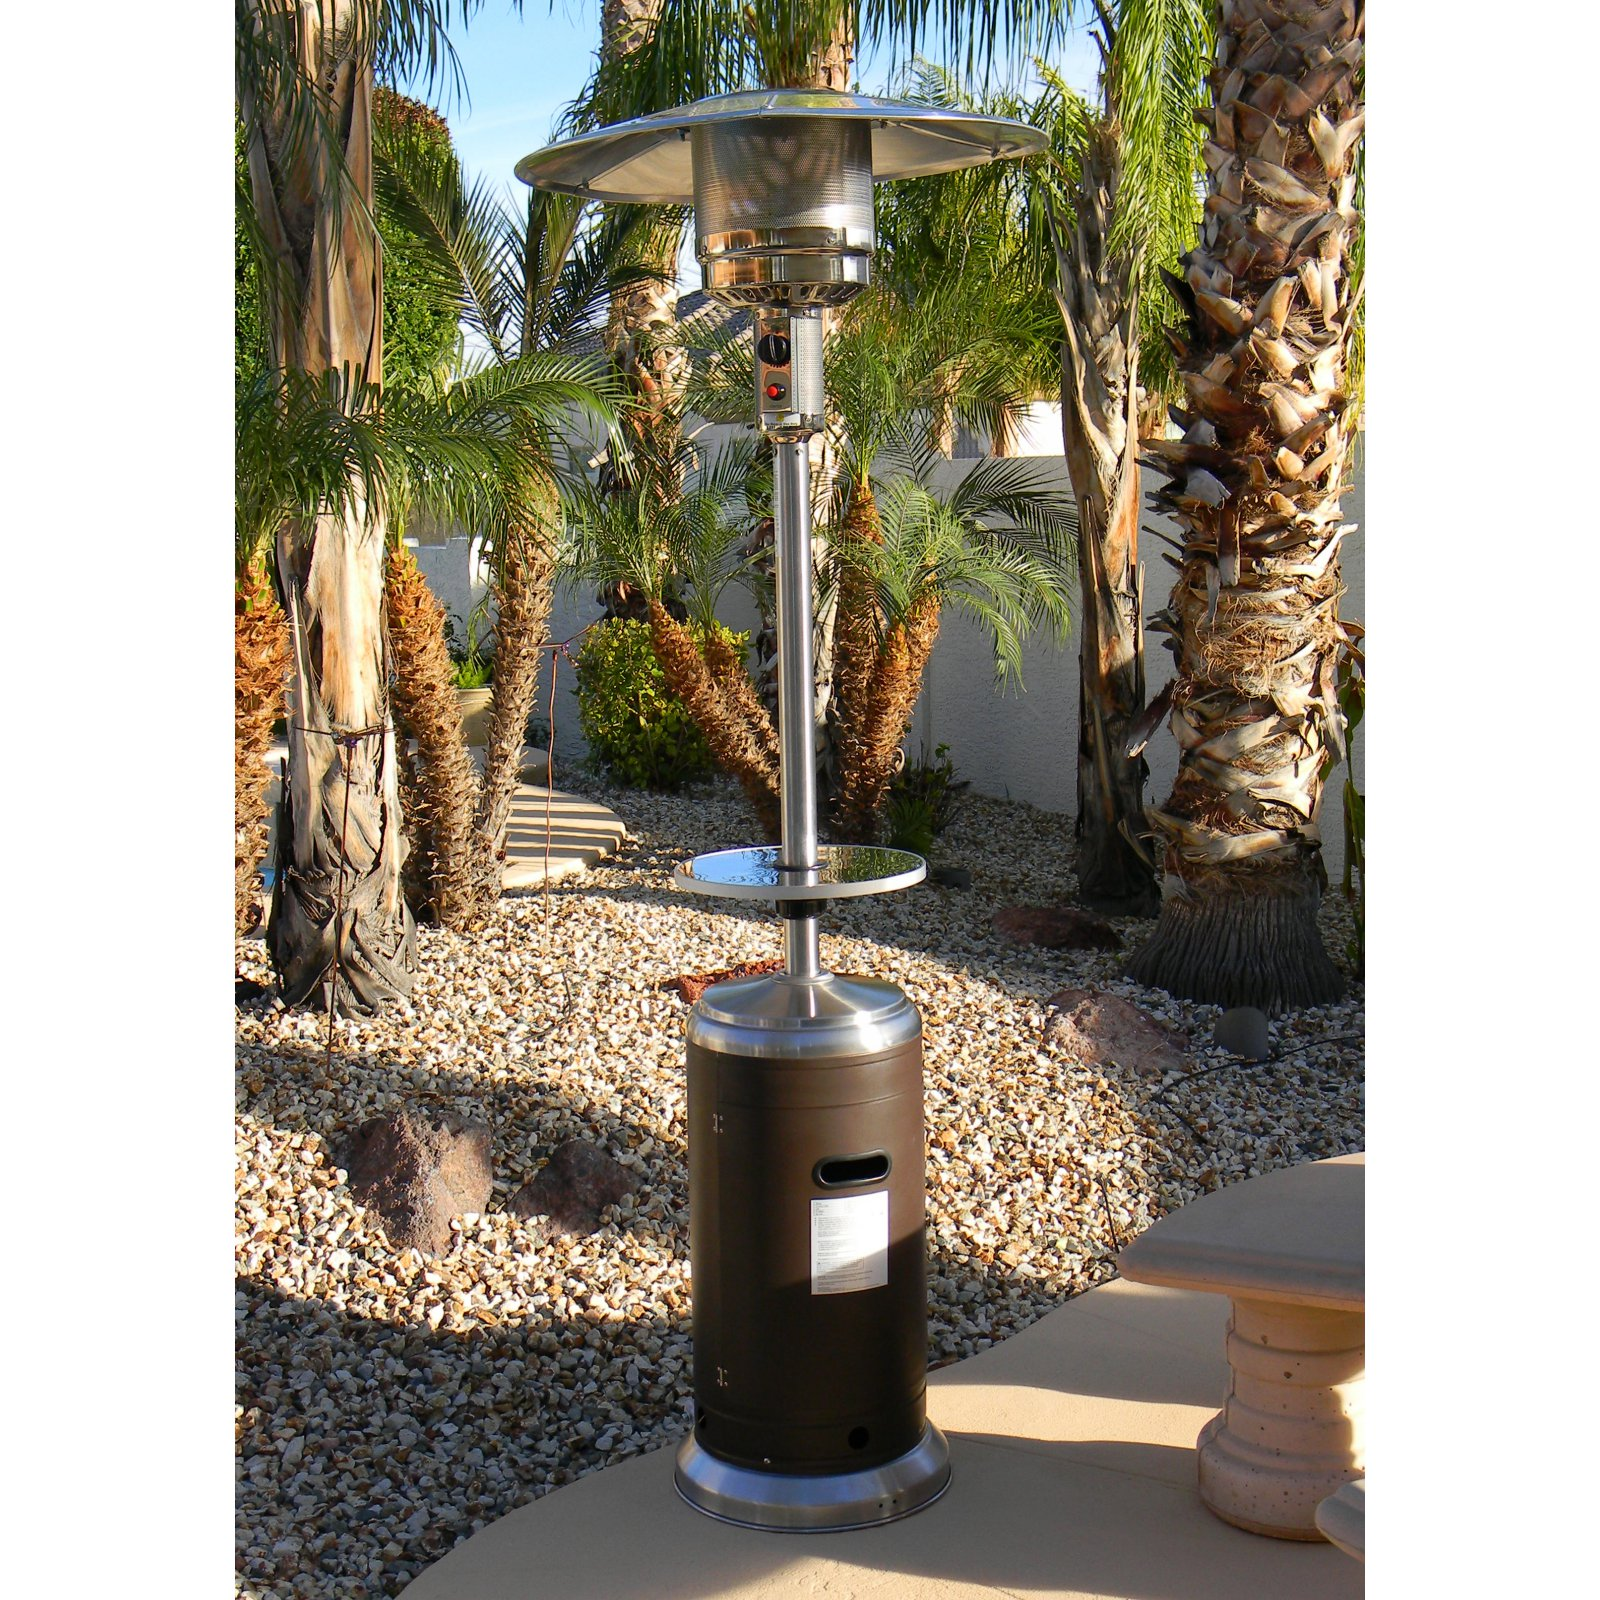 Hiland Tall Stainless Steel and Hammered Bronze Patio Heater with Table by Patio Heaters